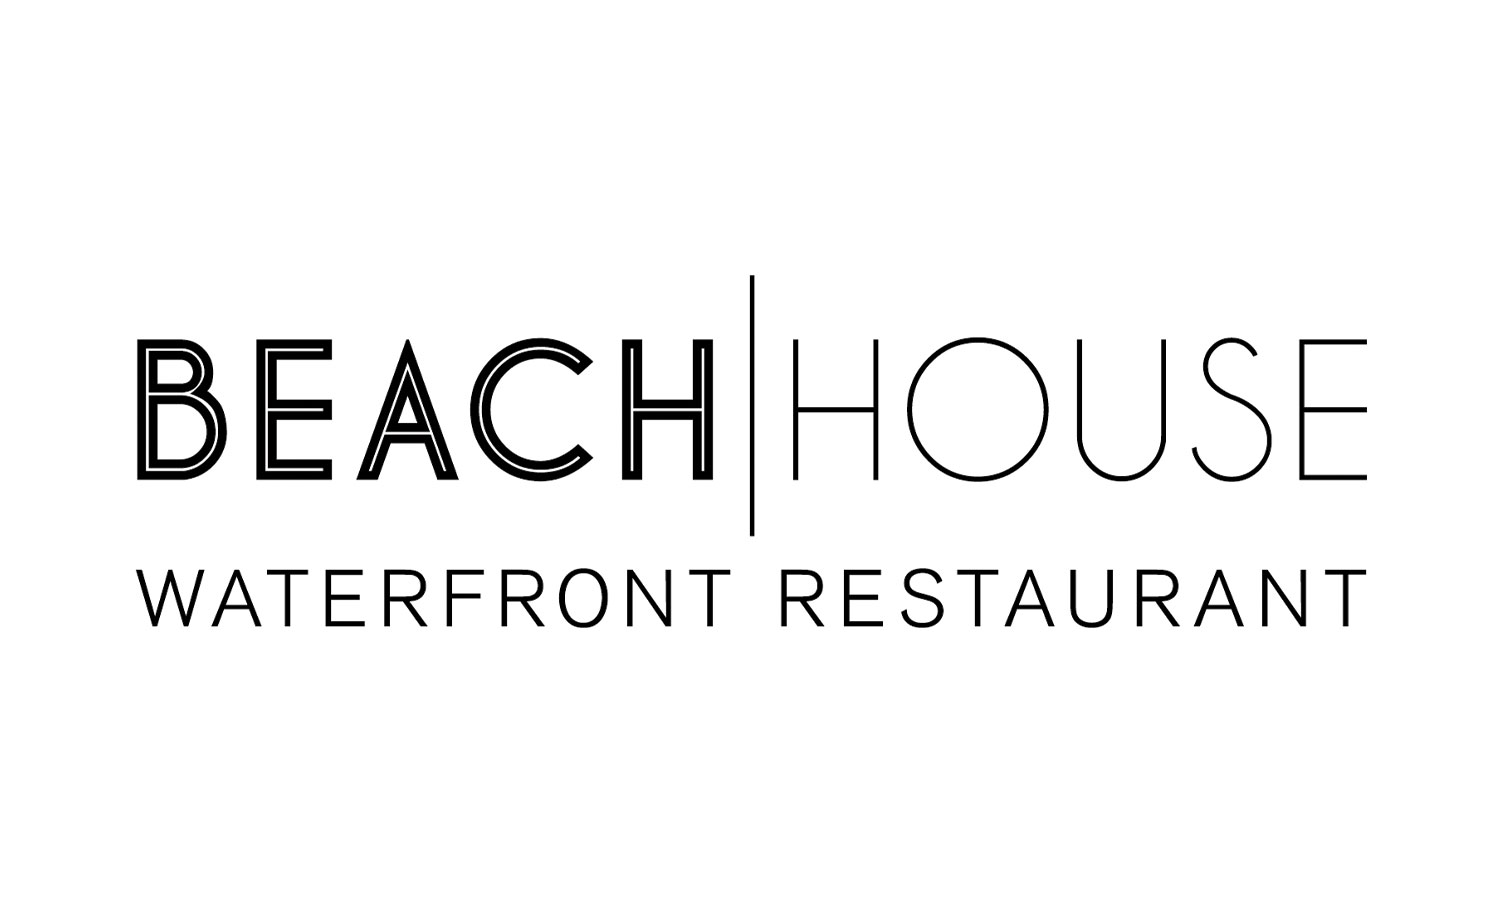 beach-house-logo.jpg